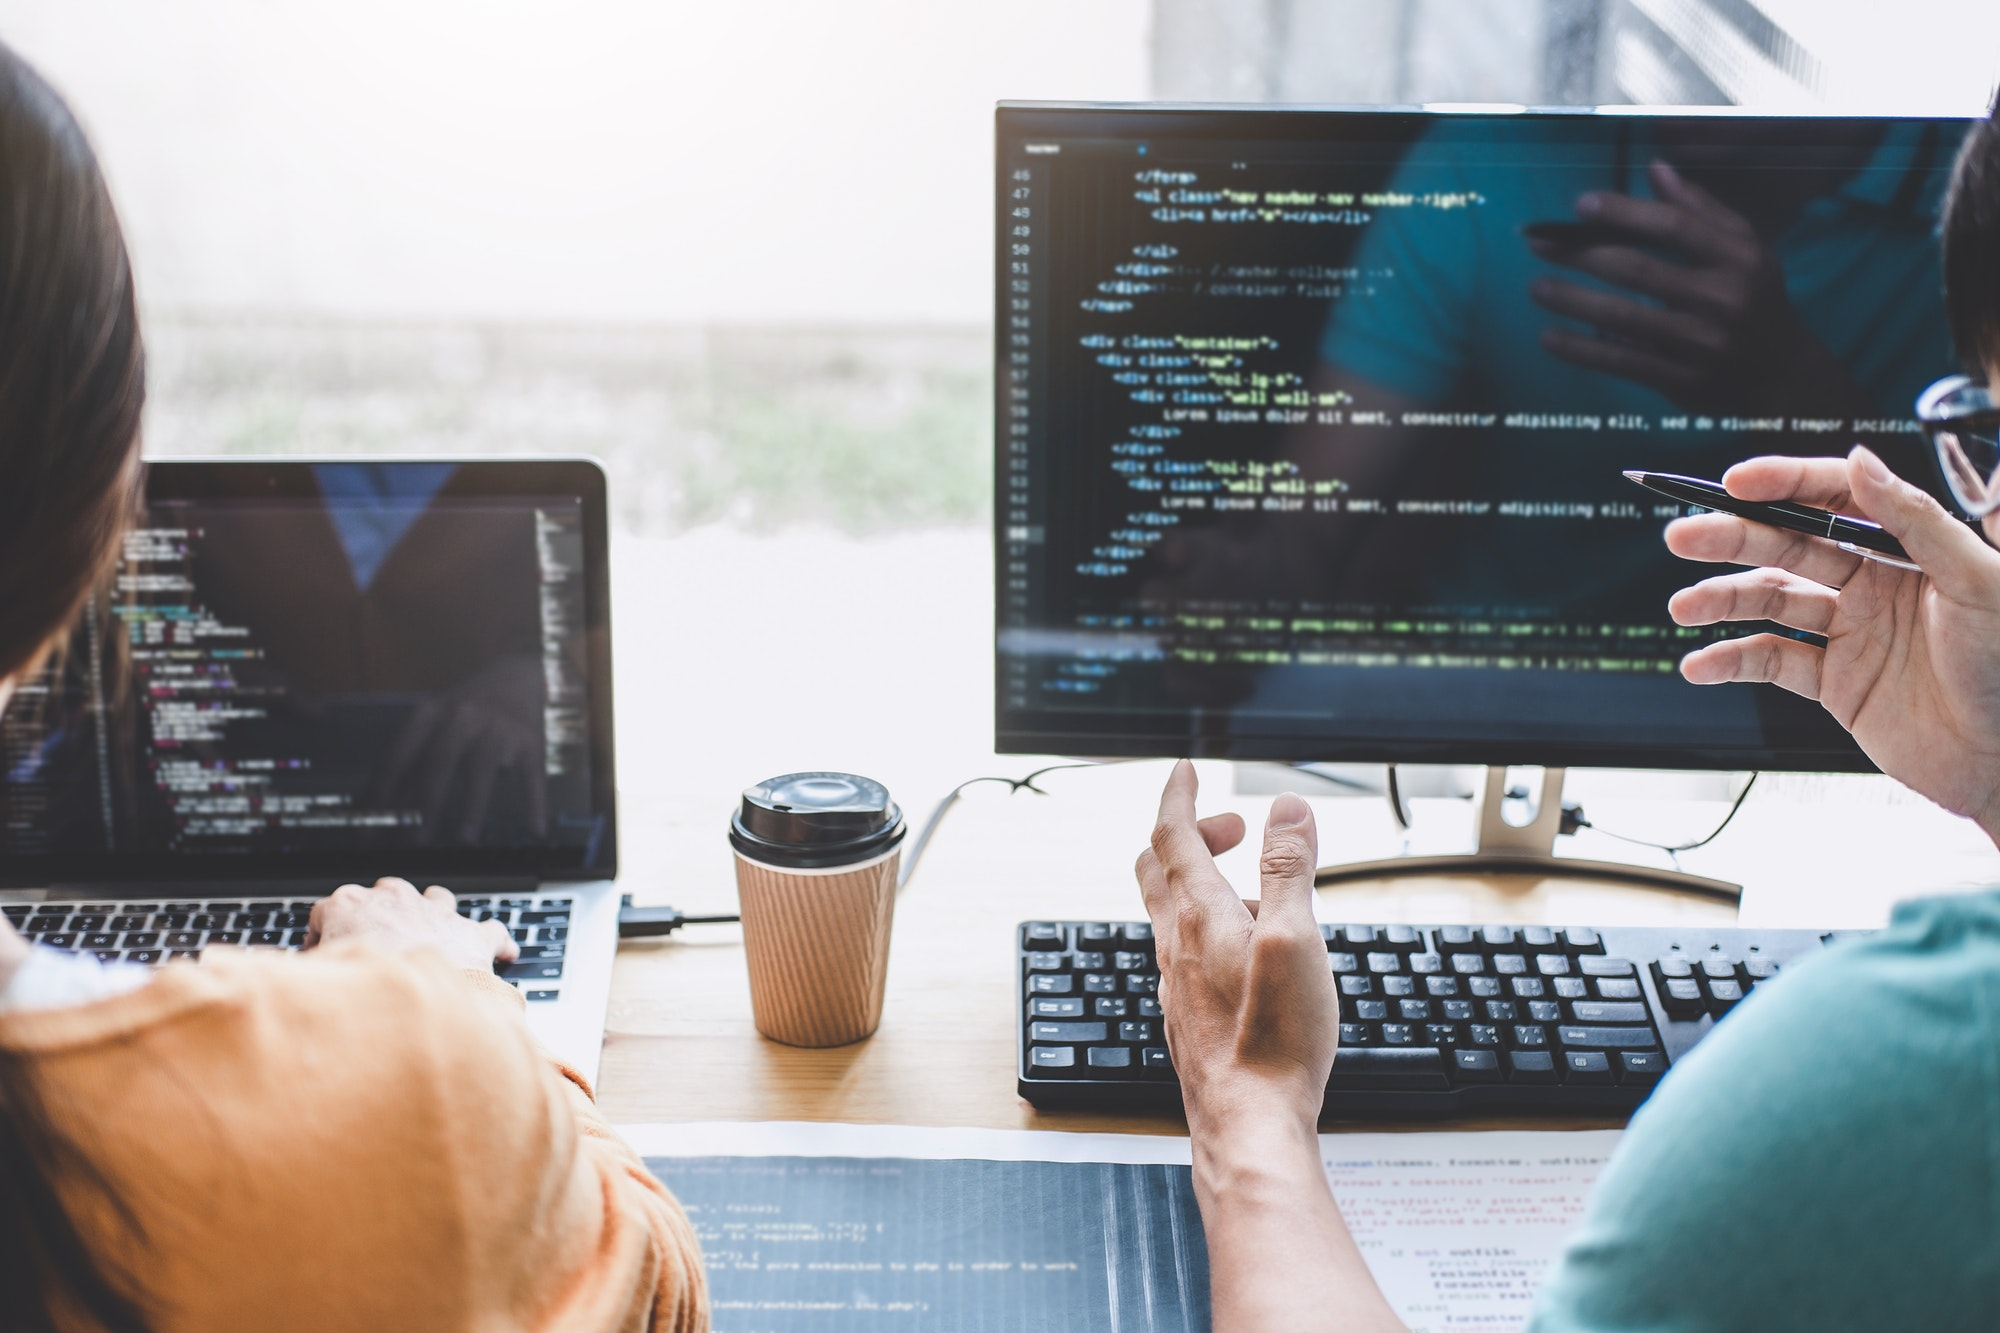 Information Security Experts reviewing software code